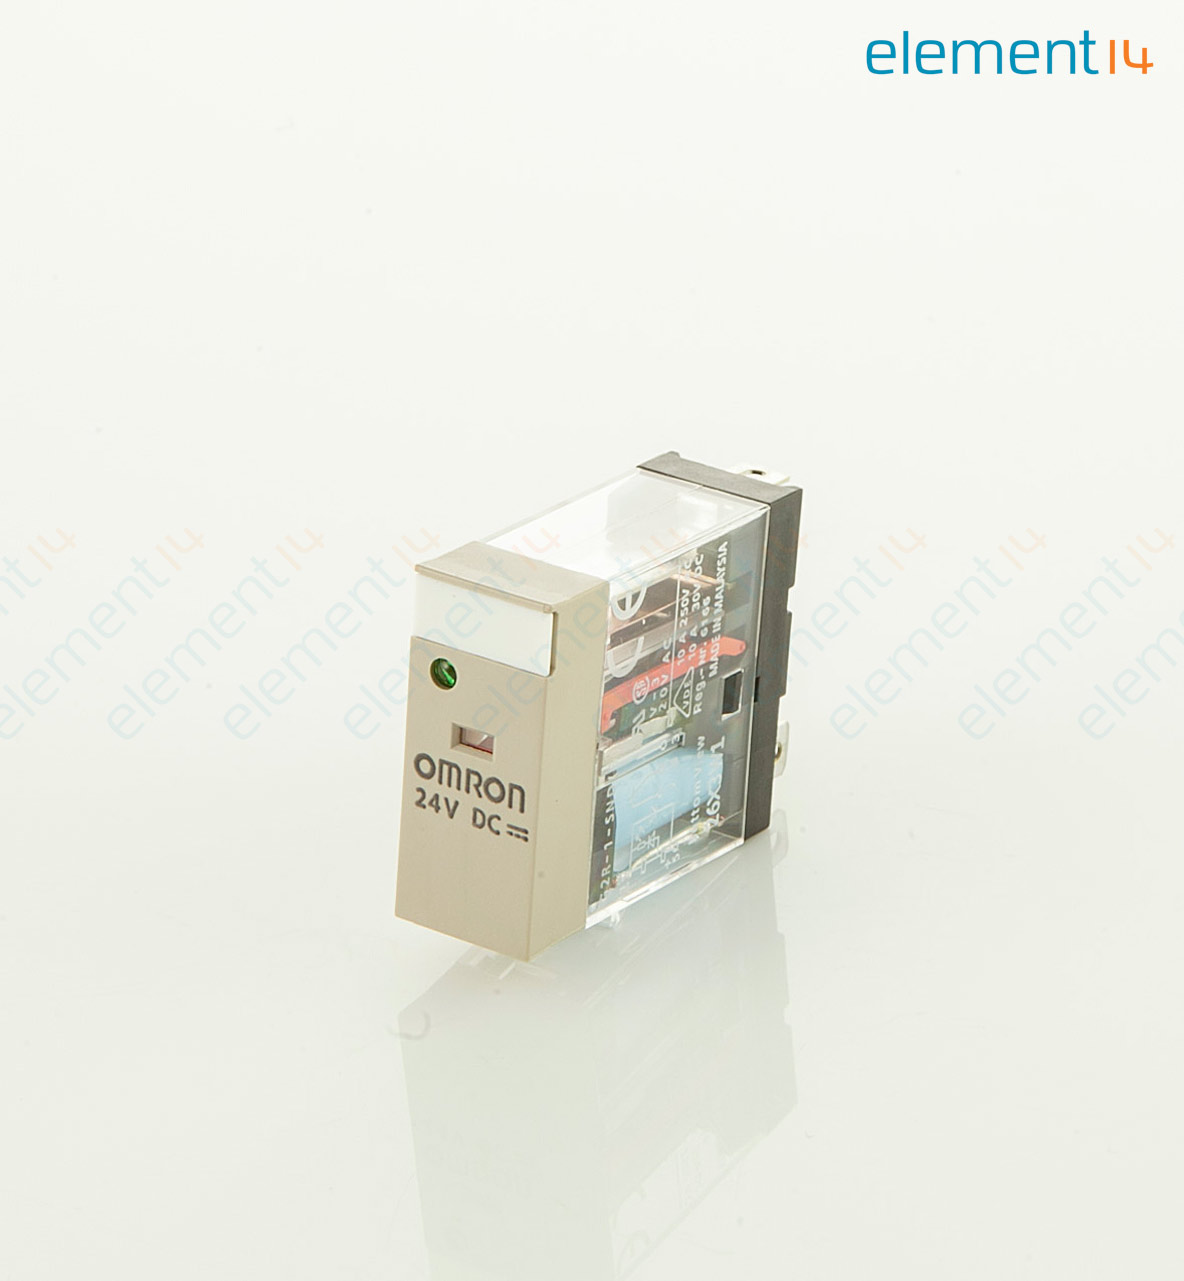 G2r 1 Snd 24dc Omron Power Relay Spdt 24 Vdc Ltspice Add To Compare